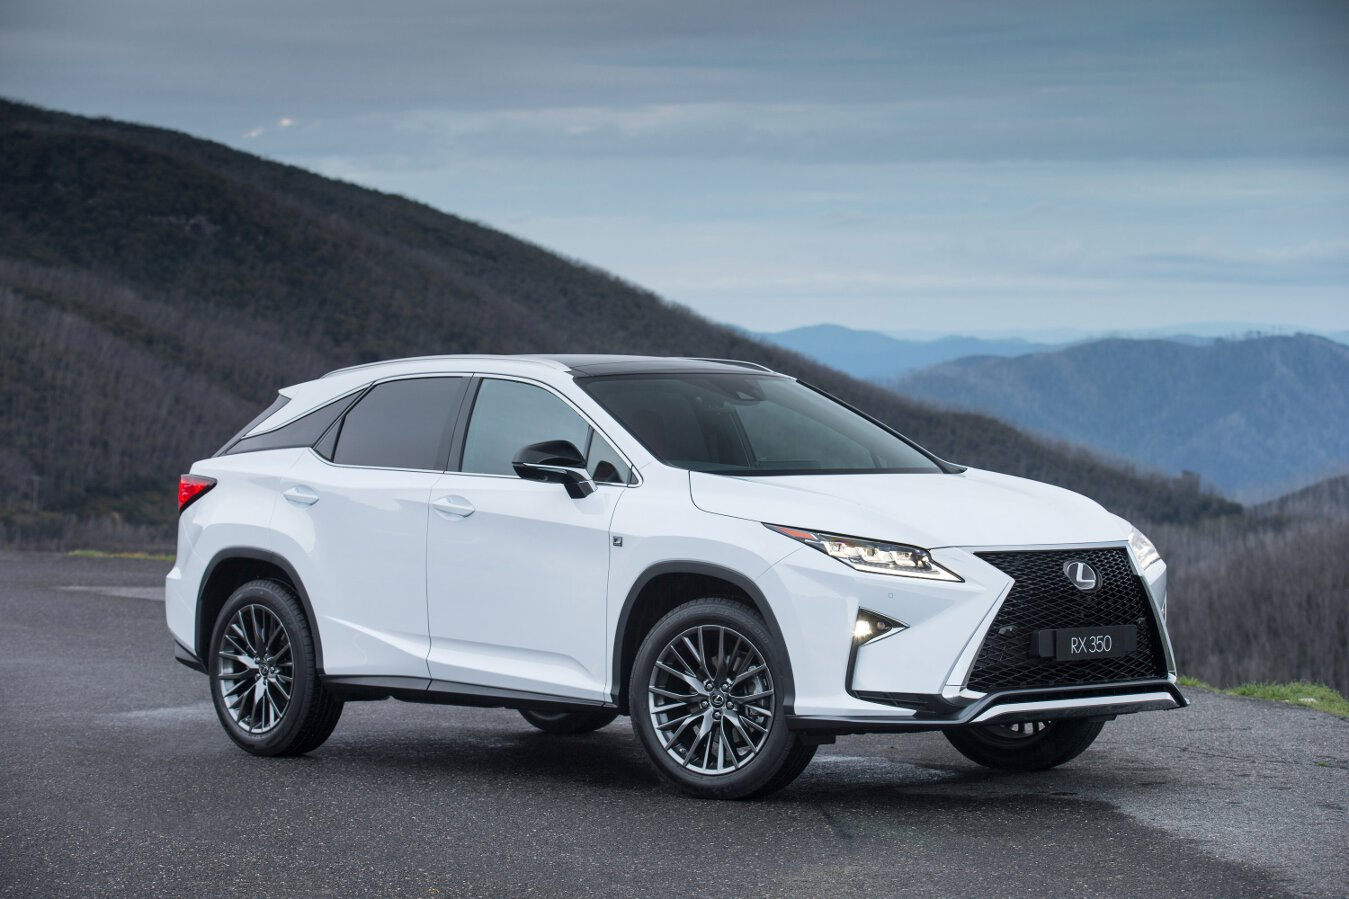 Lexus Cars News 2015 Lexus Rx Pricing And Specification